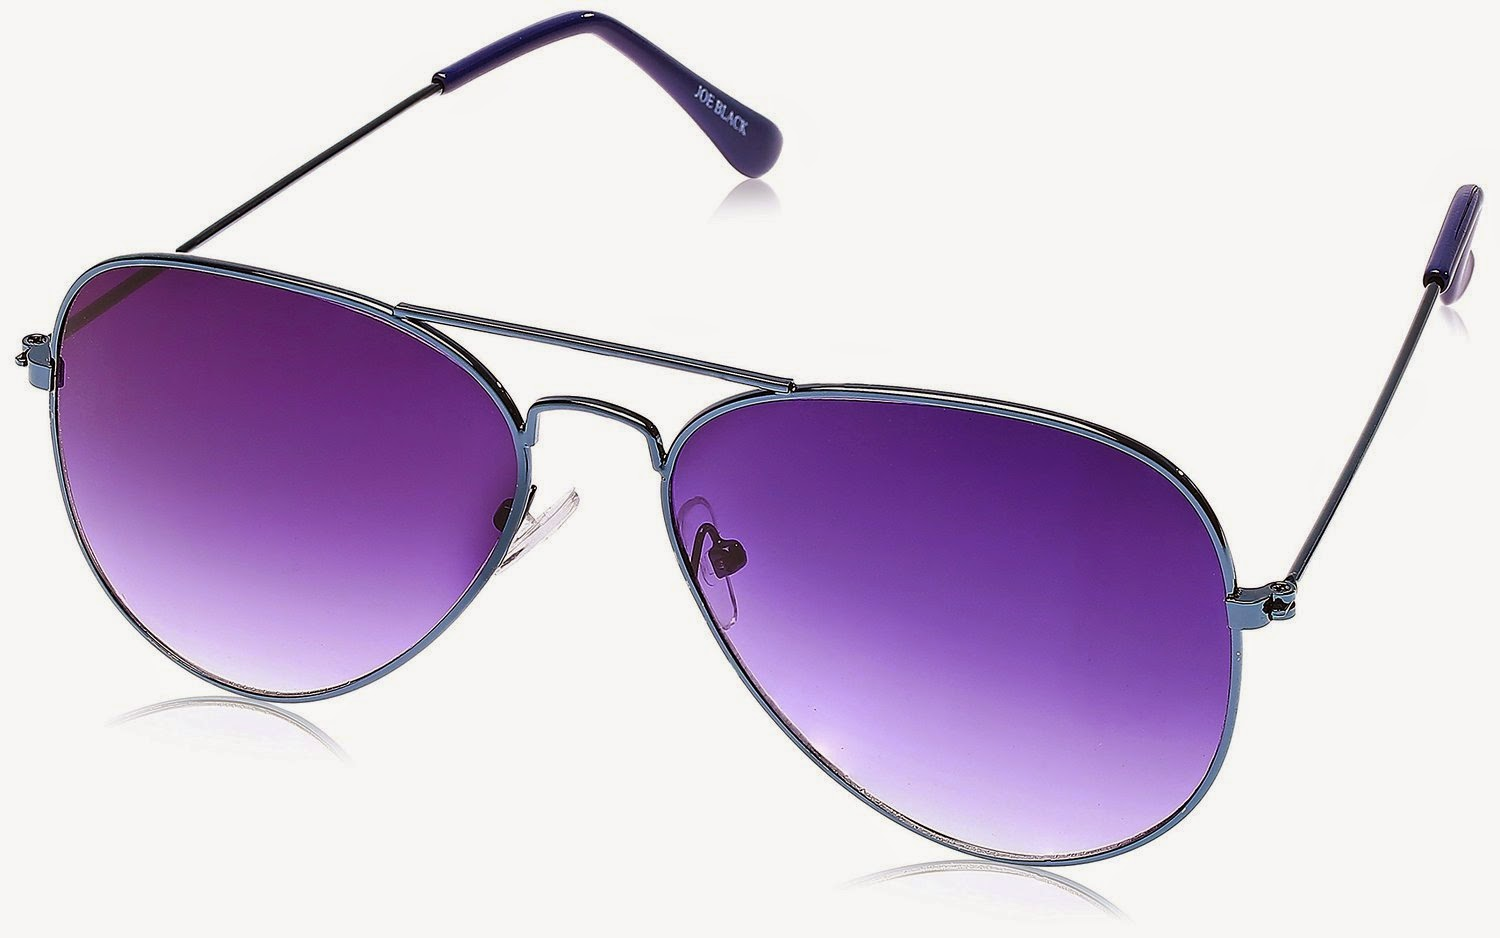 Joe Black Aviator Sunglasses (Blue) (JB-064-C27) for Rs 315 (SBI) or Rs 349